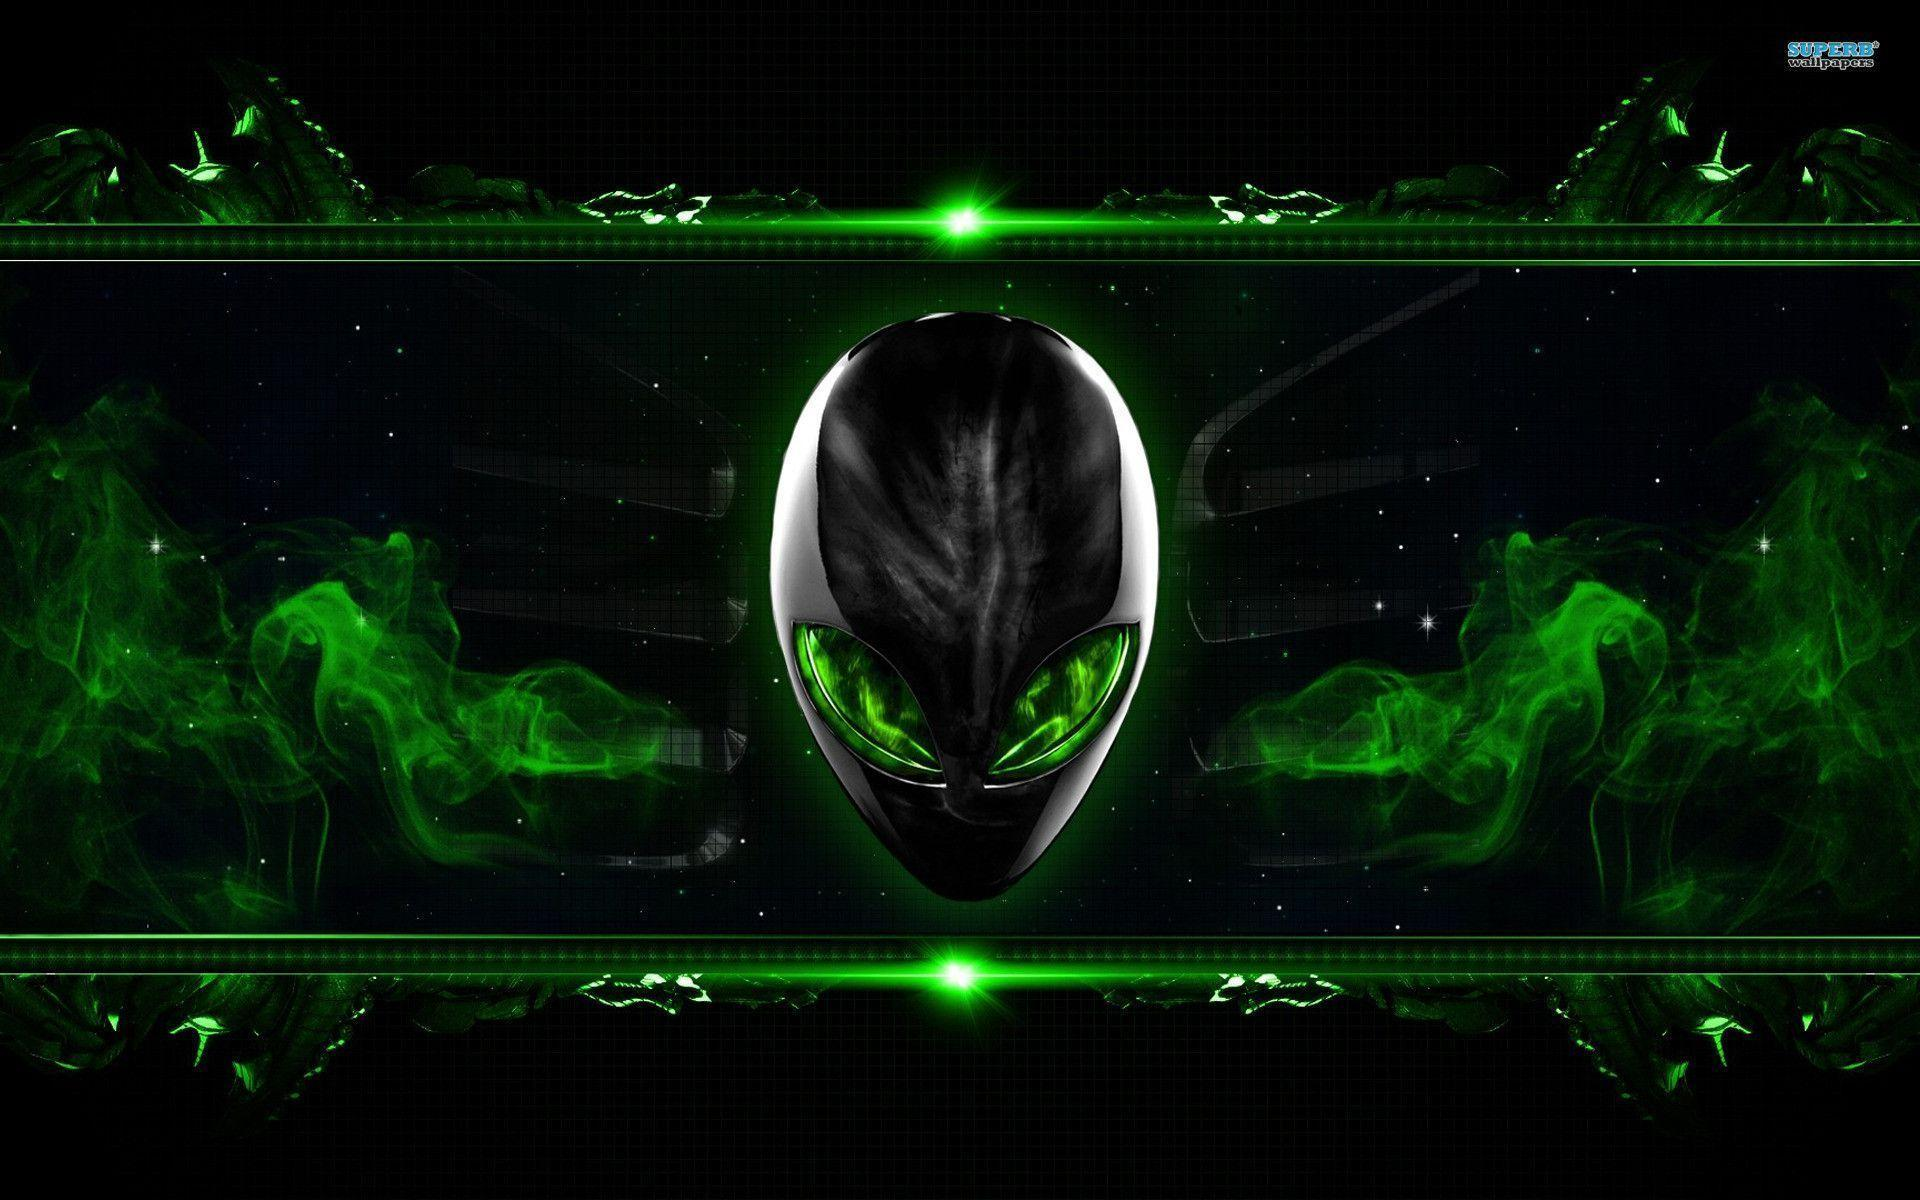 alienware wallpaper green hd - photo #2